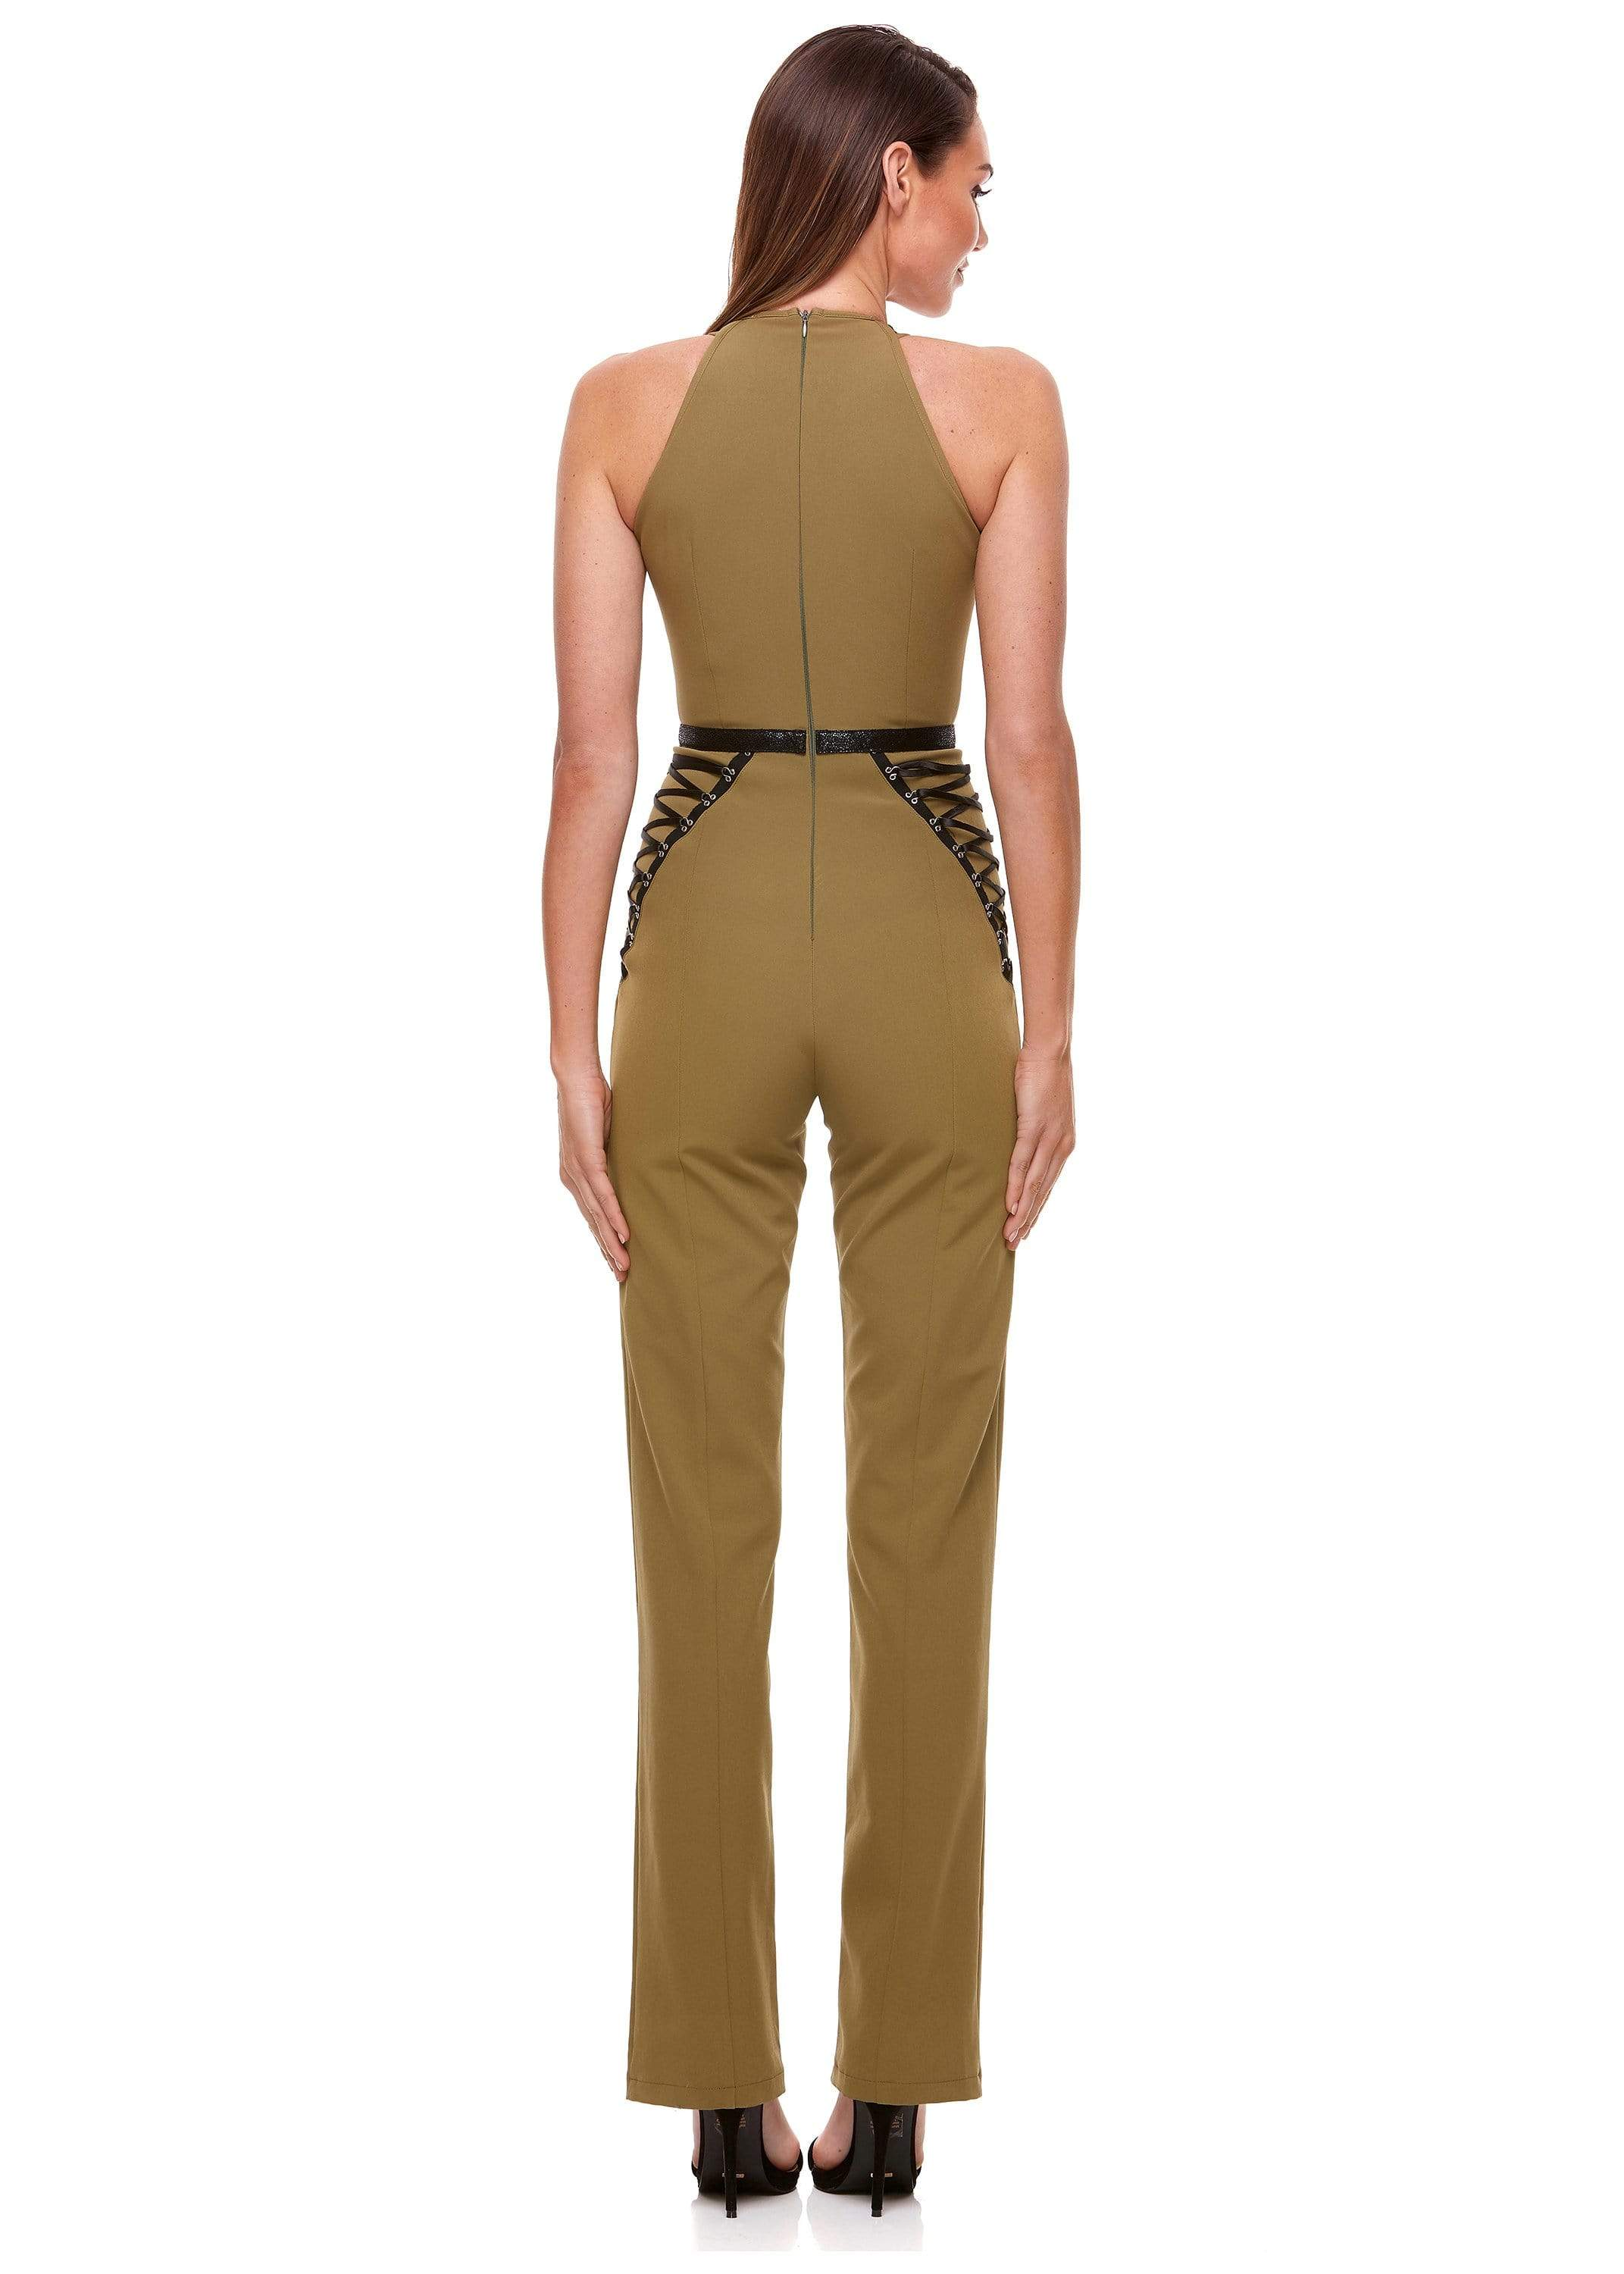 PHOEBE PANTSUIT - ELIYA THE LABEL